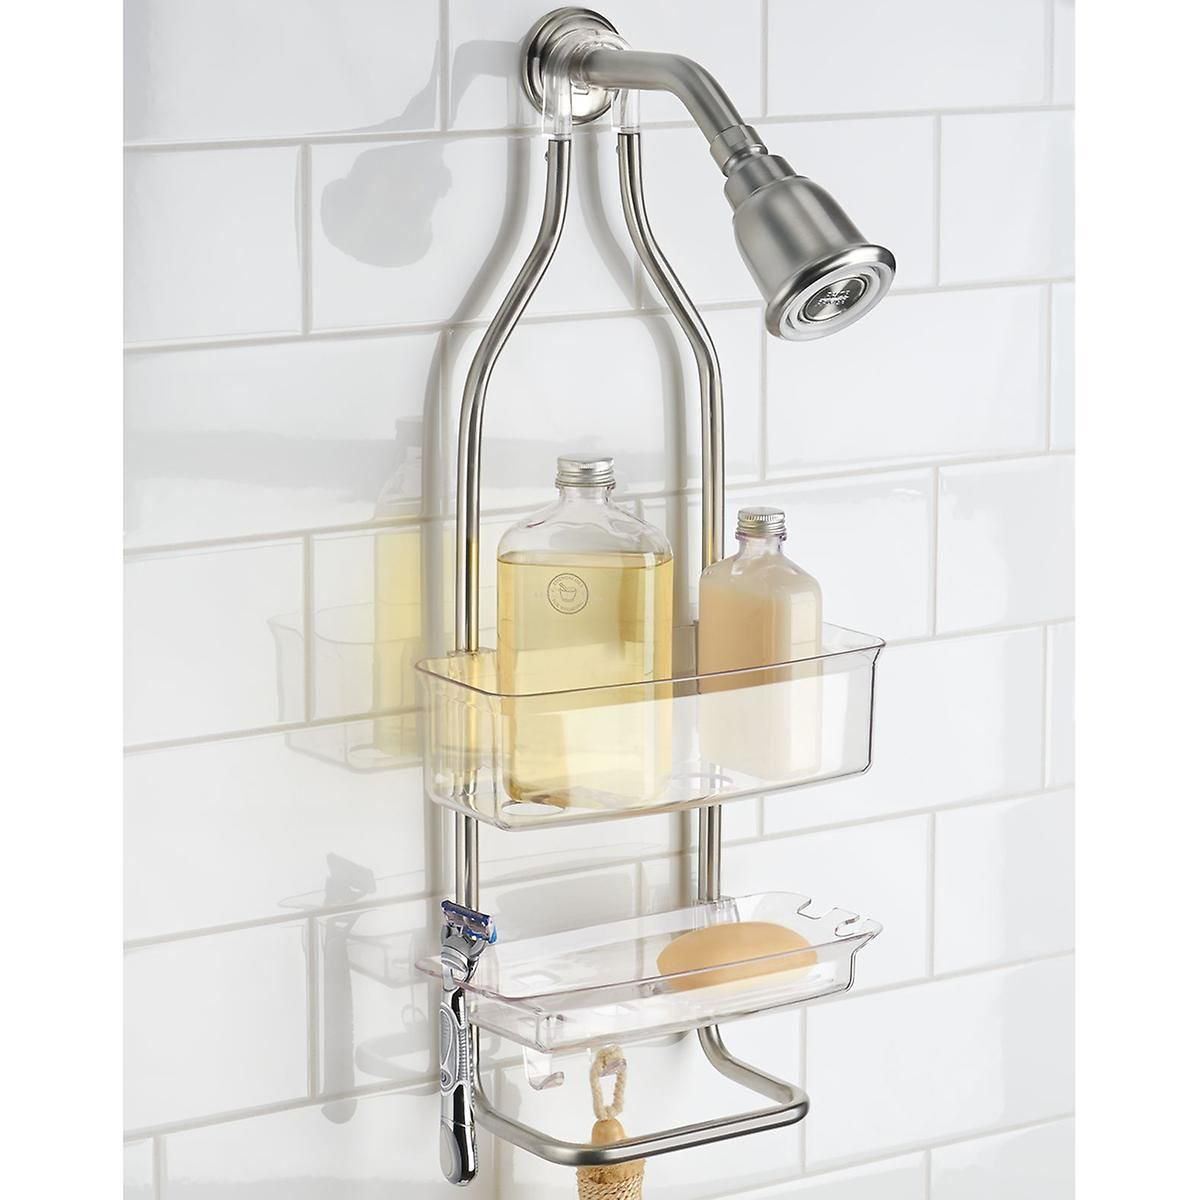 Simplex Shower Caddy In 2020 Shower Caddy Shower Organization Bathroom Corner Rack